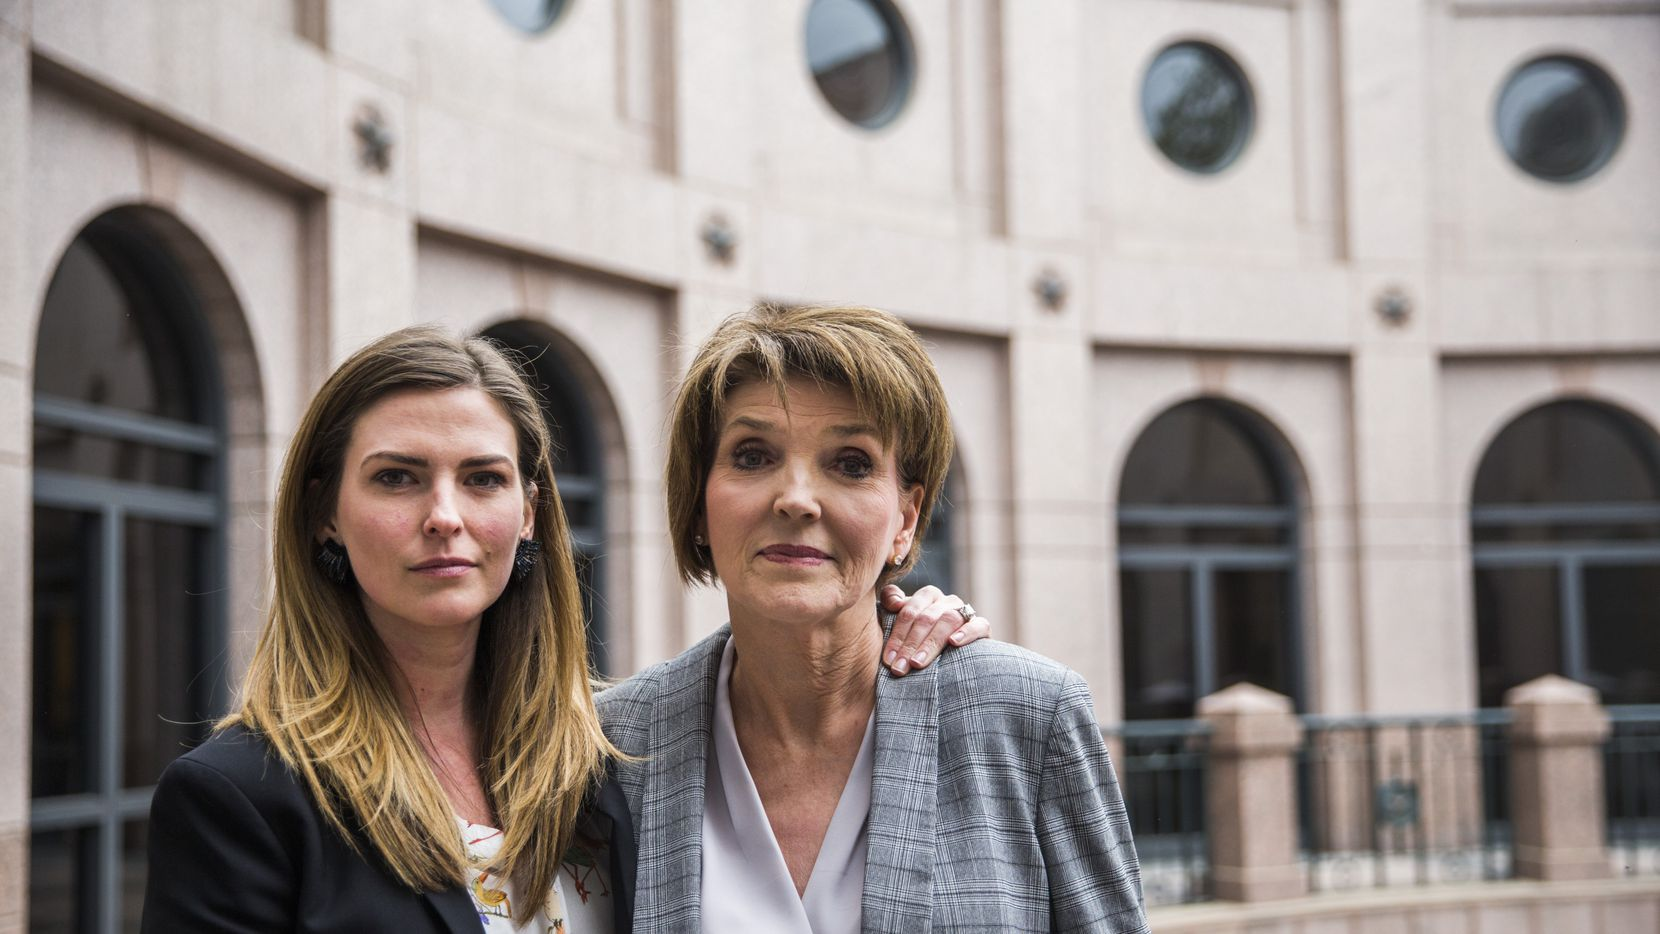 Eve Wiley (left) and her mother, Margo Williams, appeared before a Texas Senate panel in April to push for a law that was passed making it a state jail felony for a health care provider to implant human reproductive material from an unauthorized source without consent of the patient. Williams' former fertility doctor, Kim McMorries of Nacogdoches, is now under scrutiny by the Texas Medical Board.